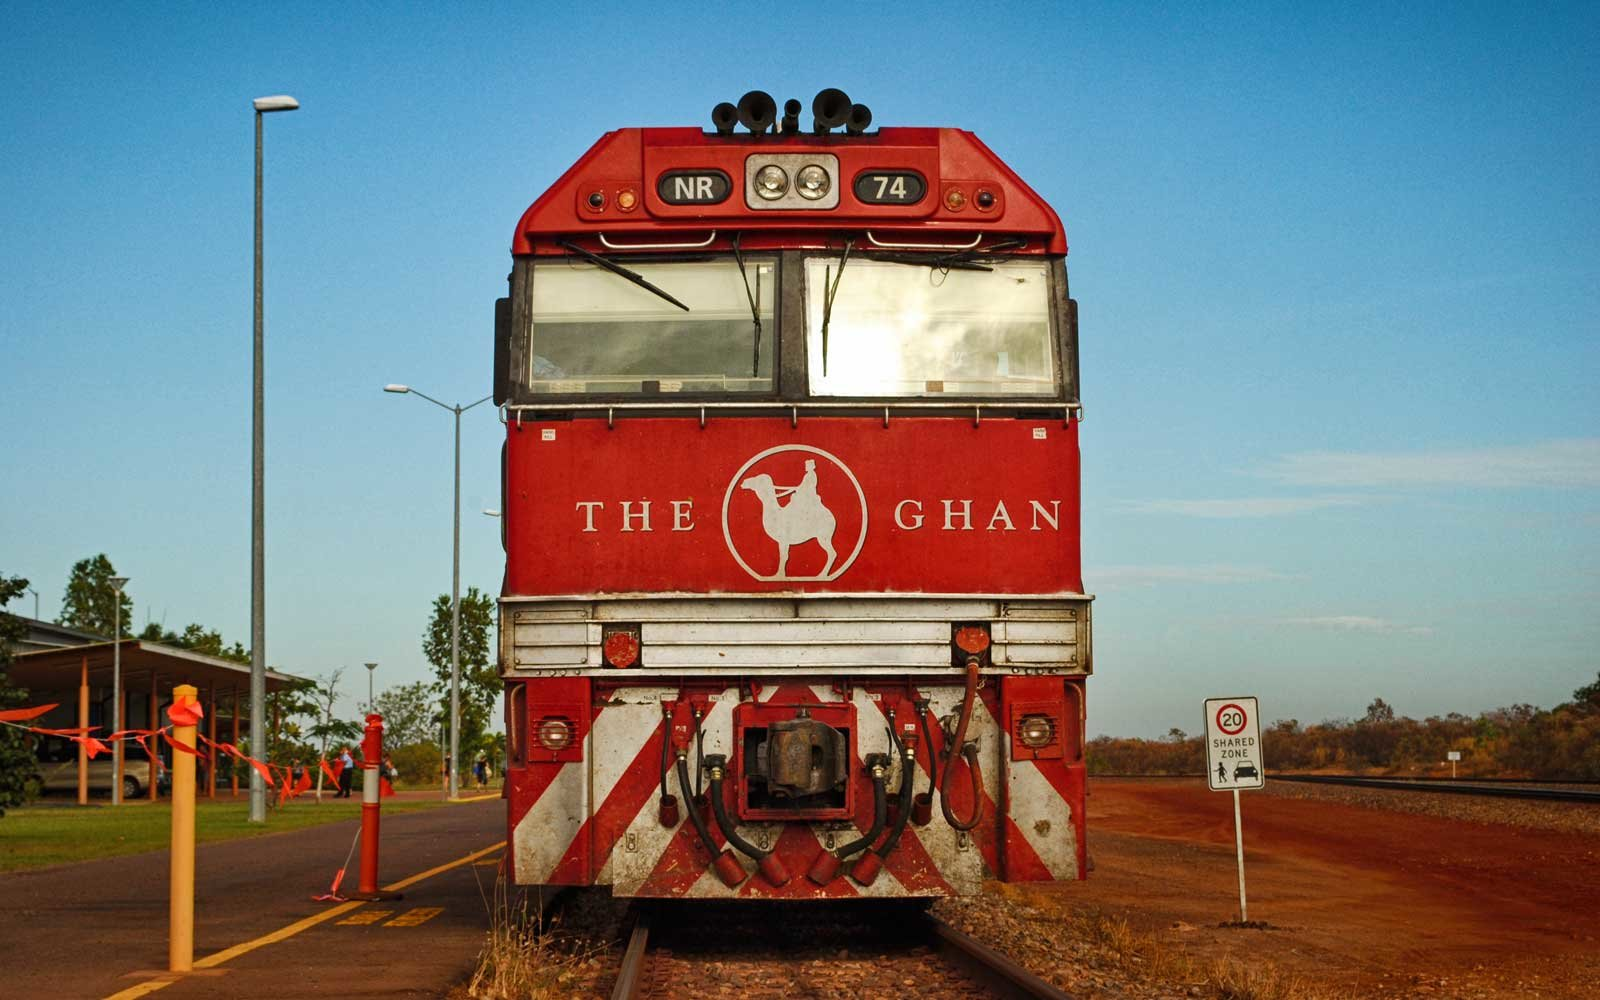 The Ghan train, Australia